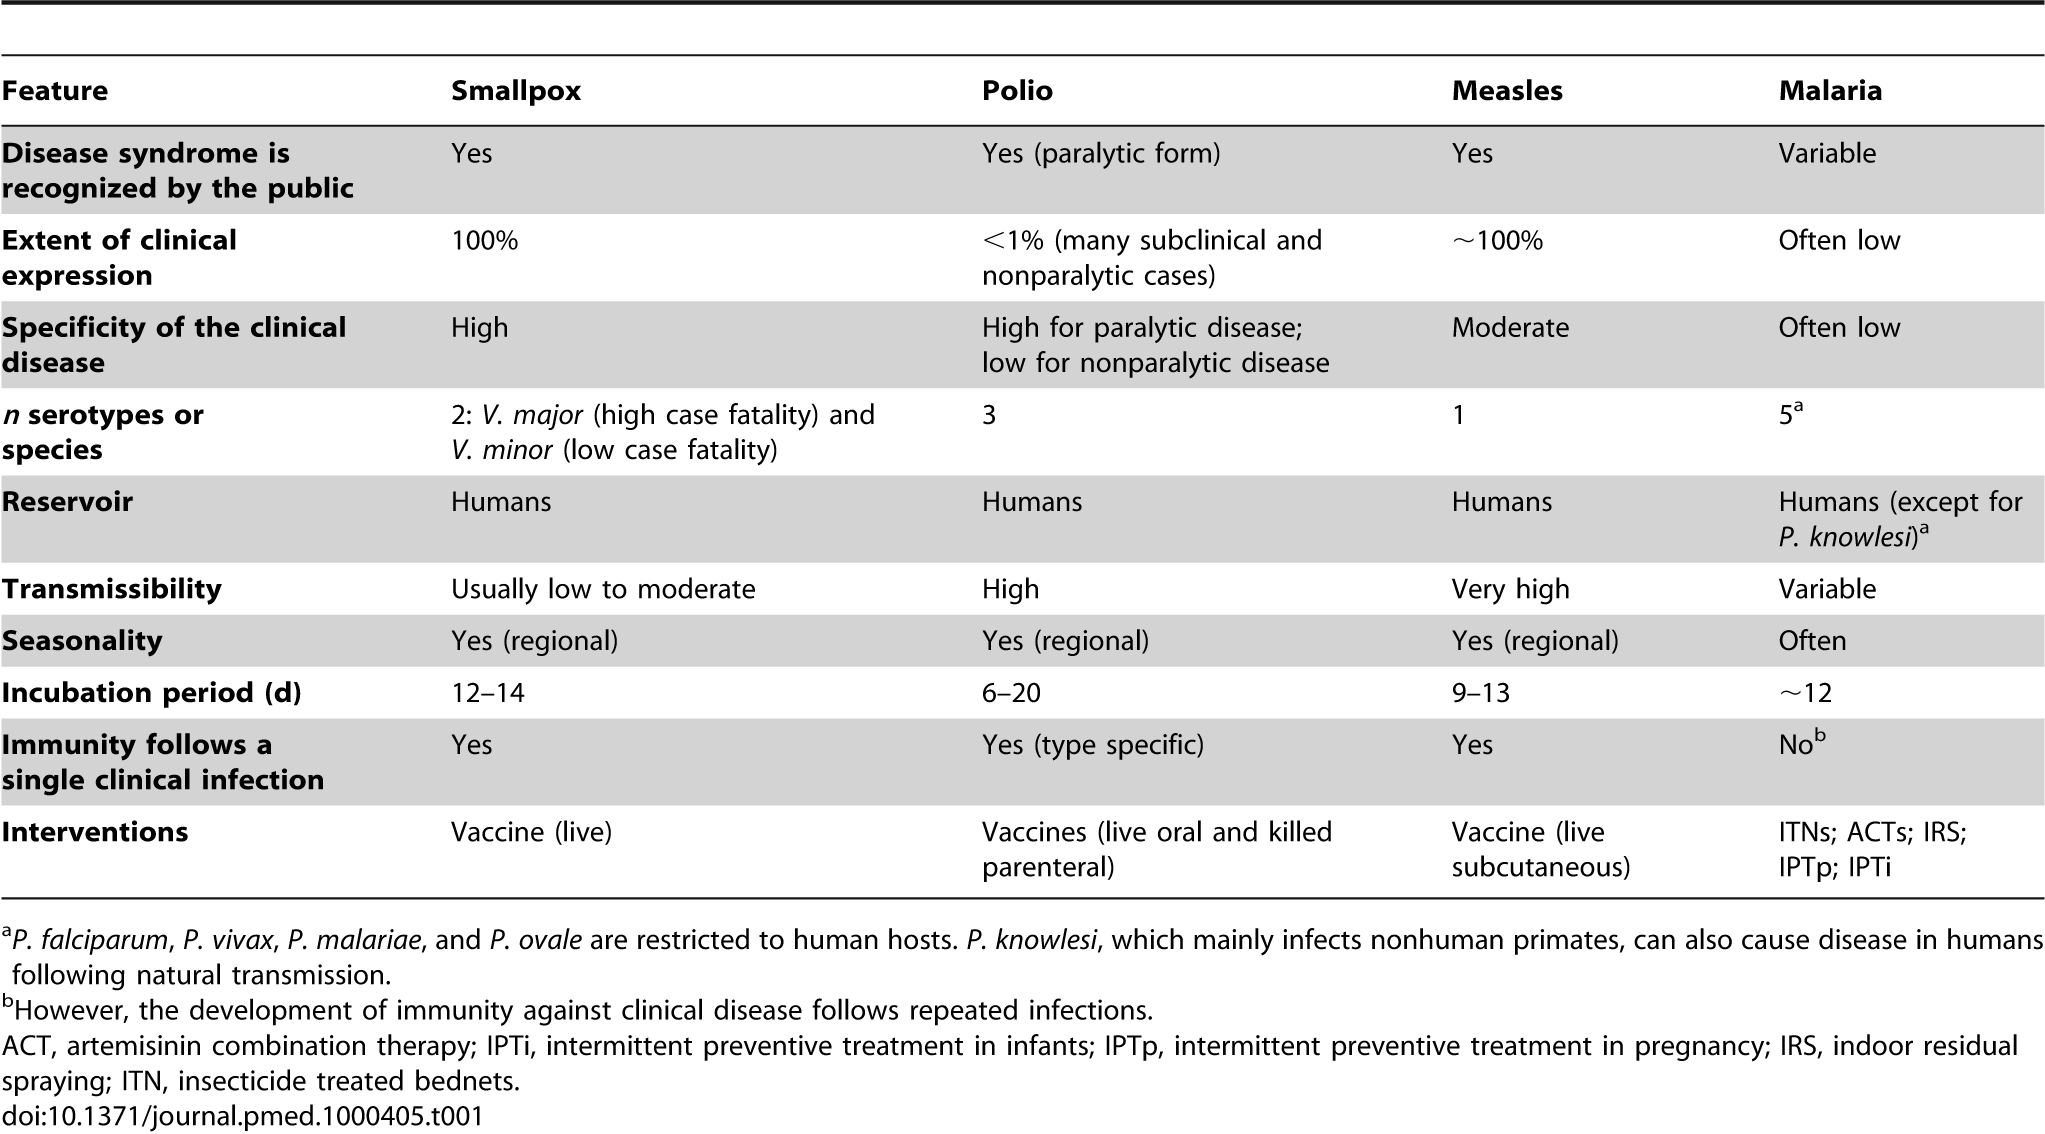 The Role of Research in Viral Disease Eradication and